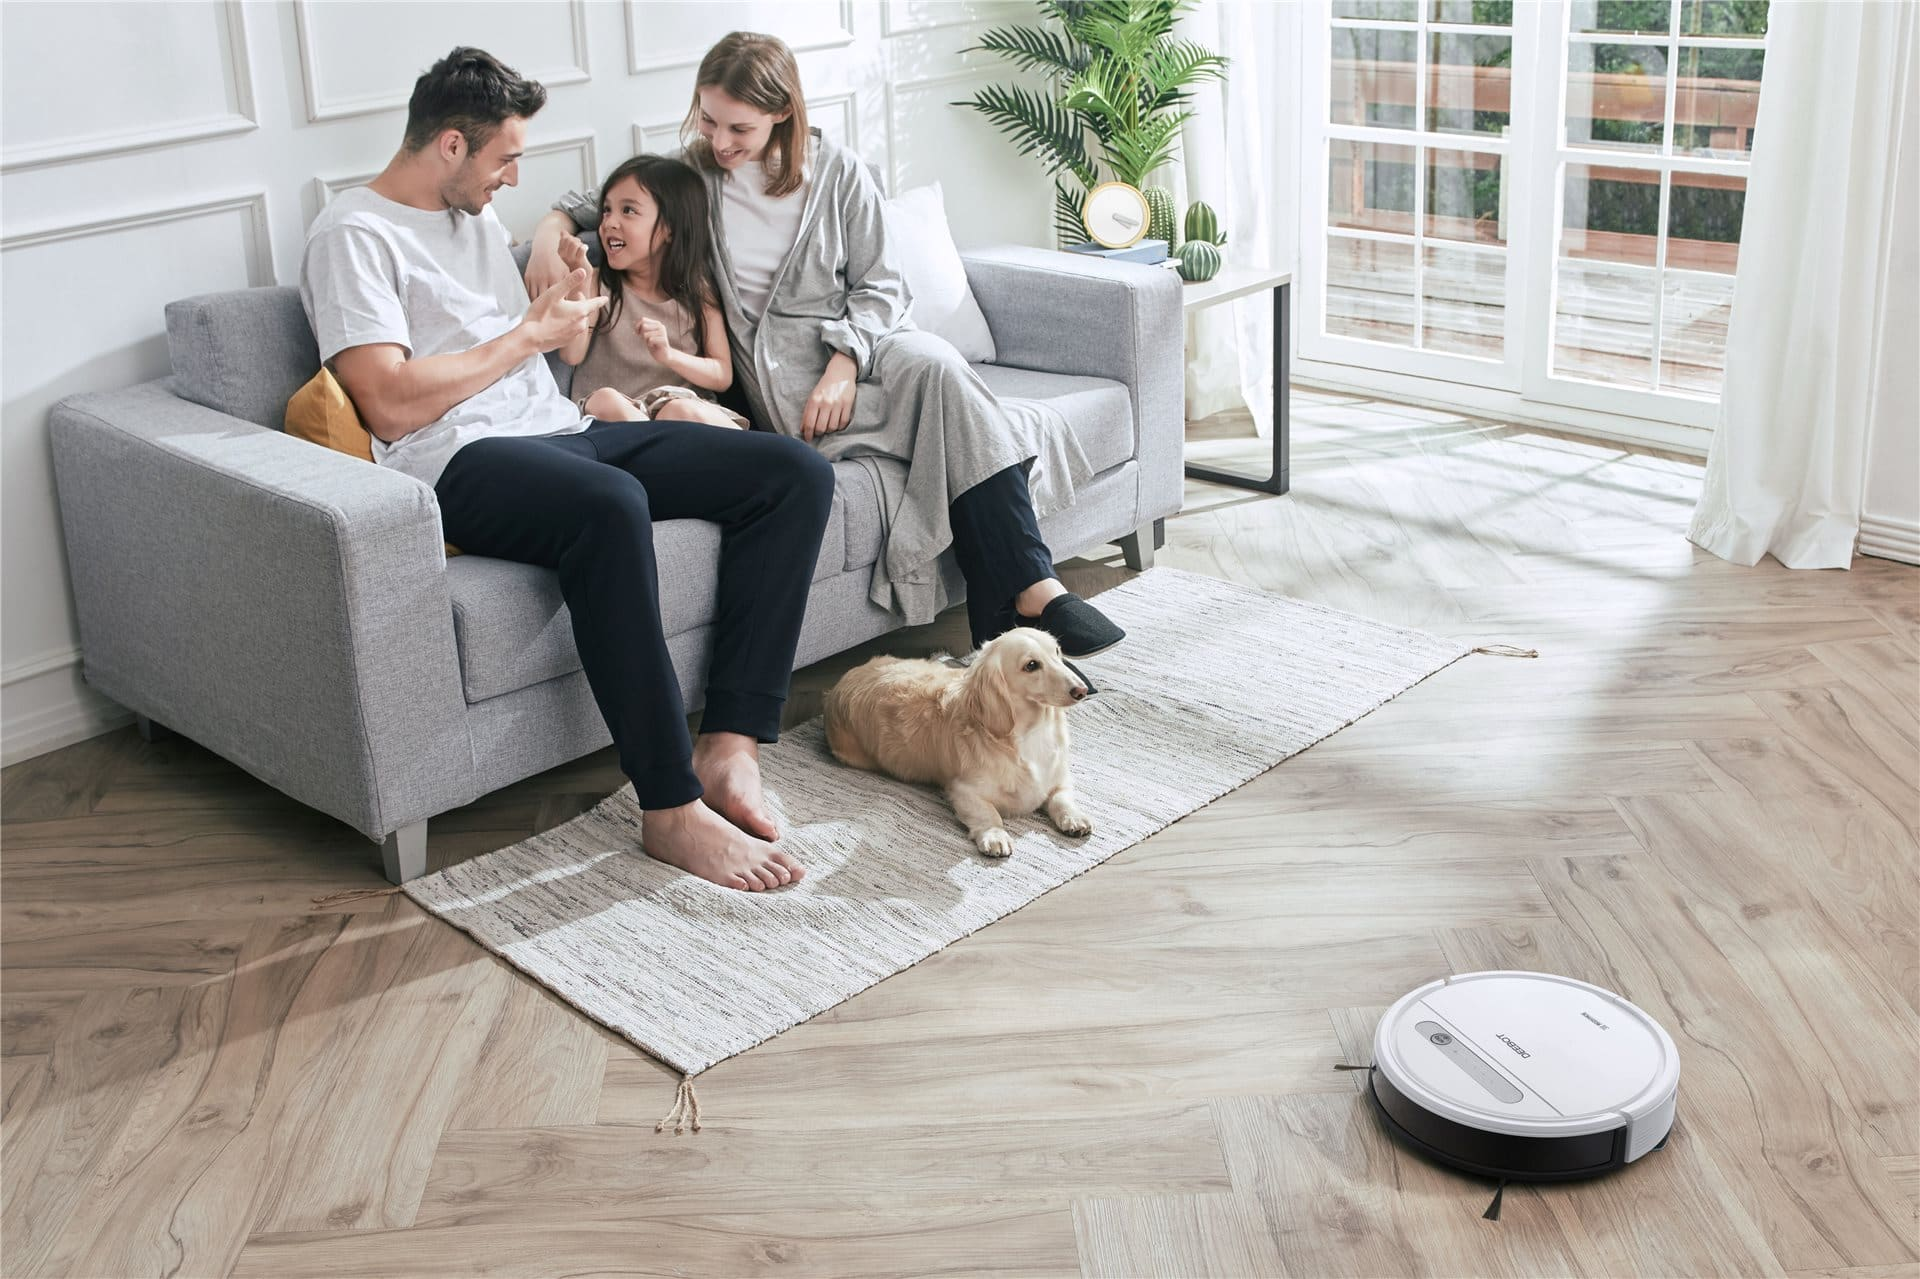 A Popular, sold-out robotic vacuum & mop is returning to Aldi next Wednesday